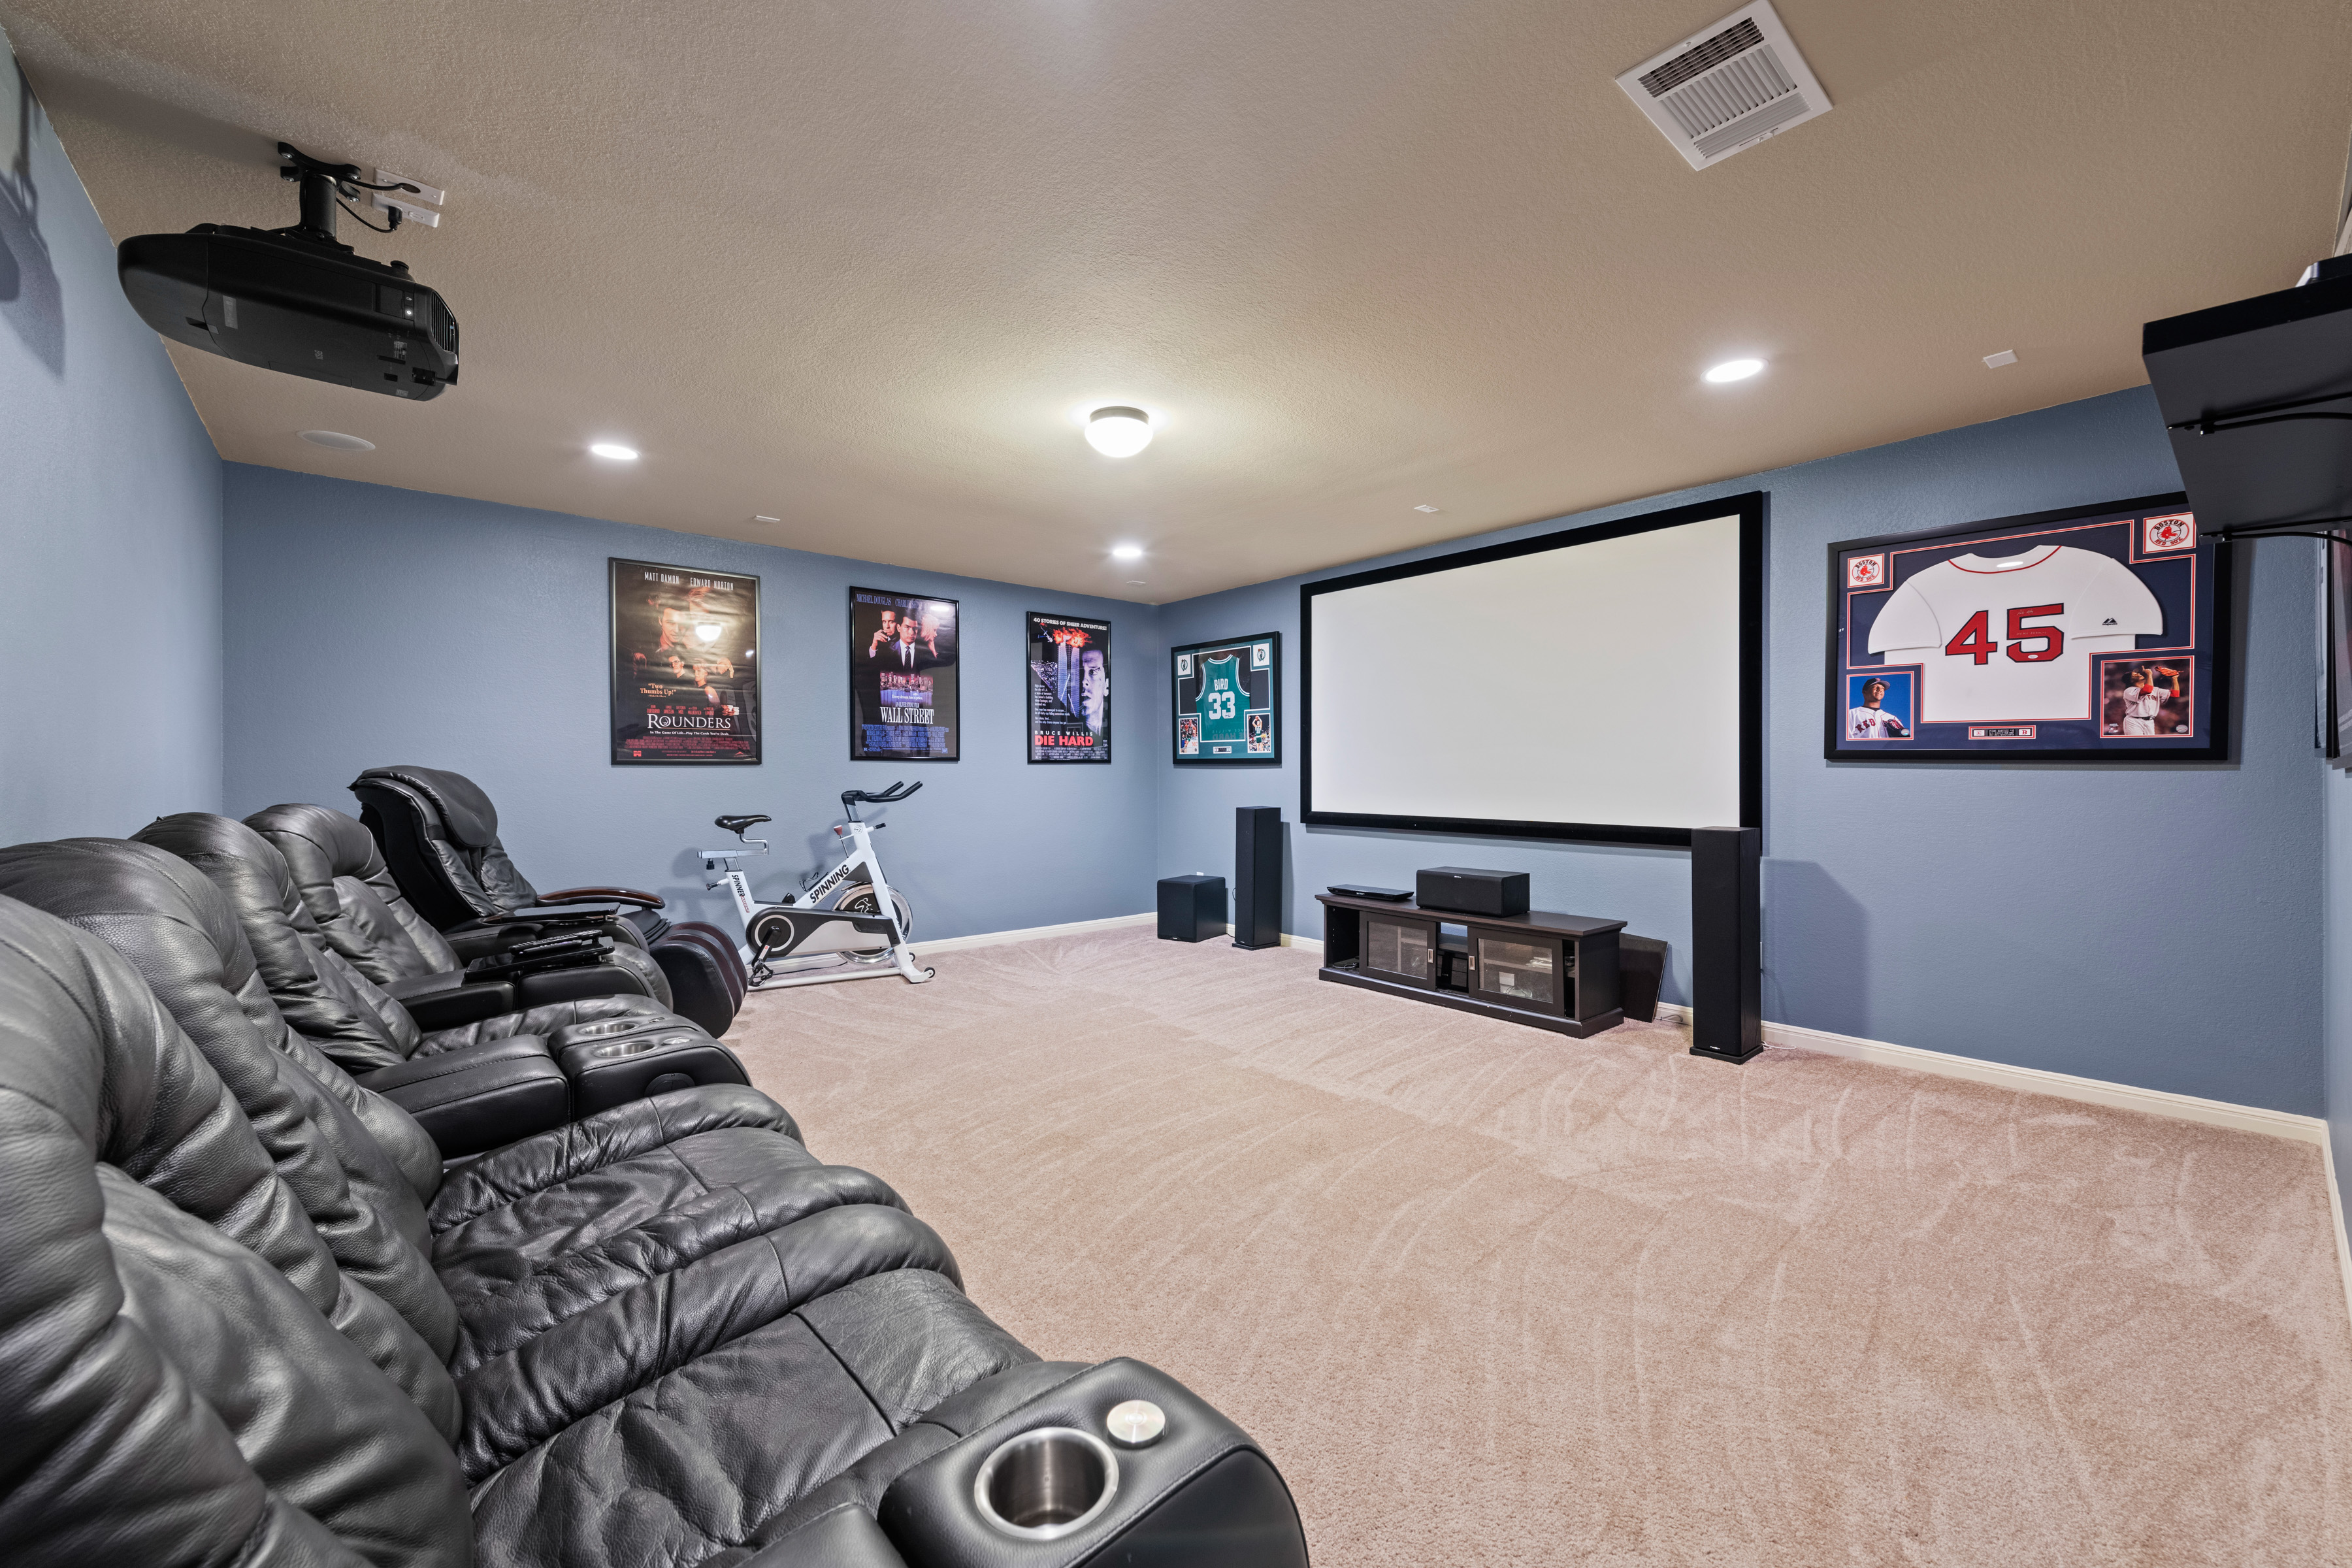 Media Room with Projector and Screen